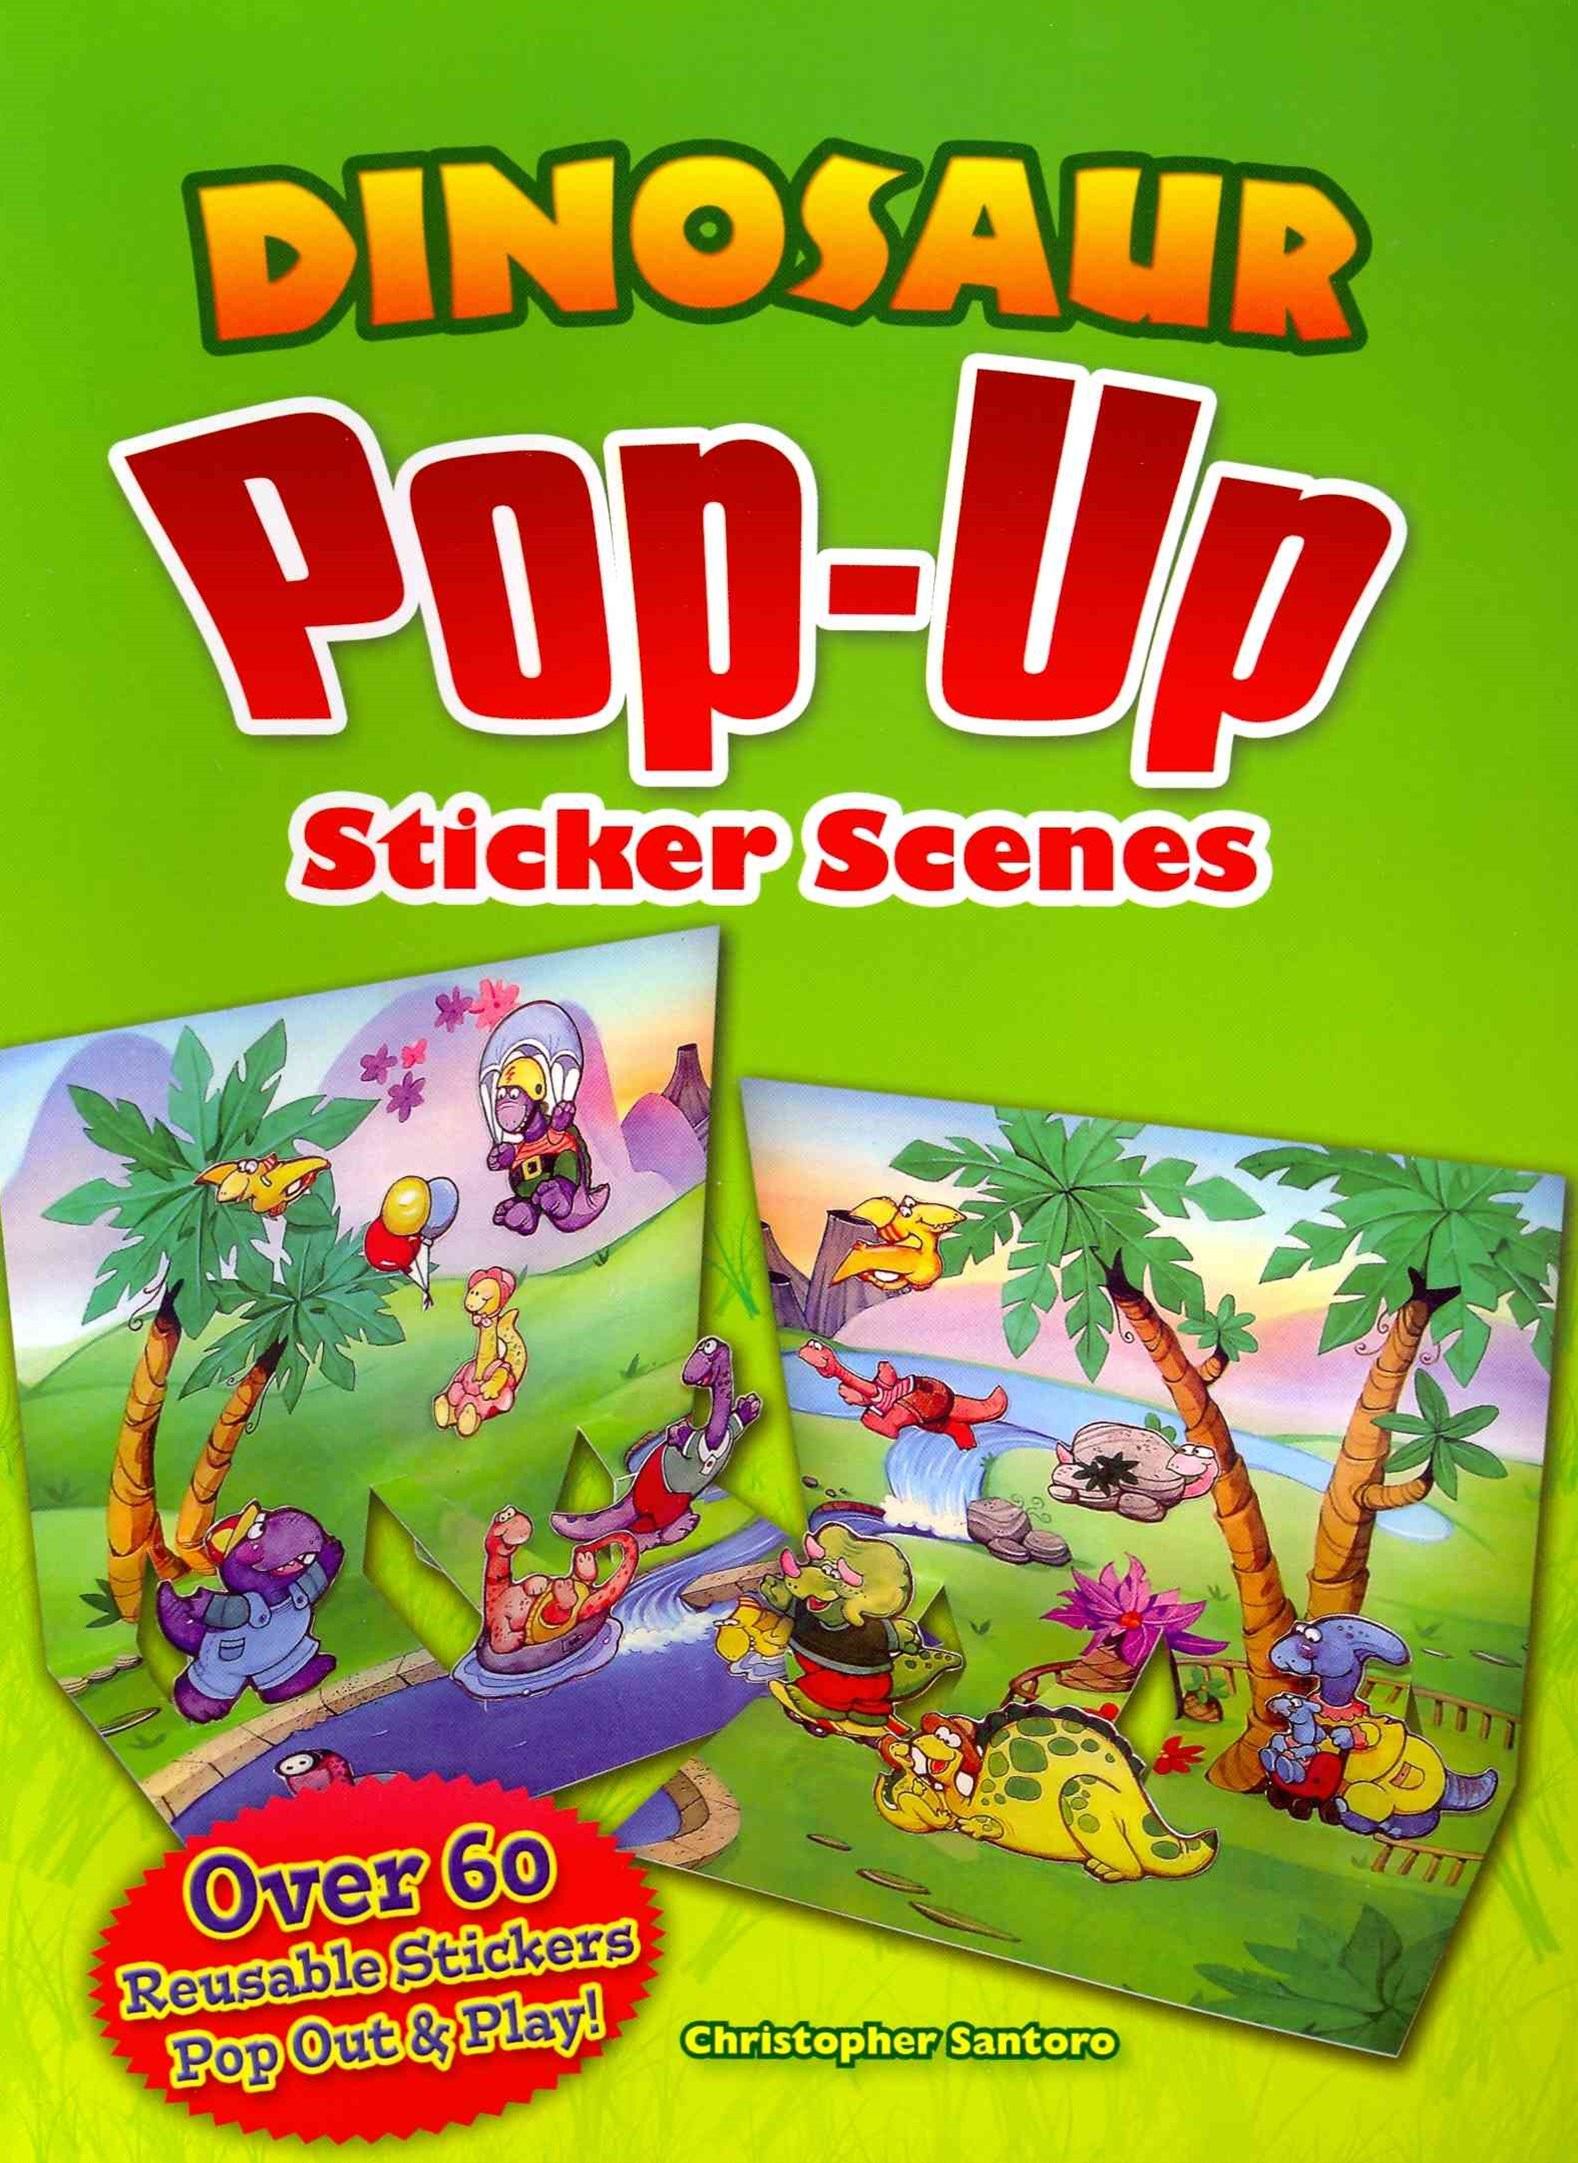 Dinosaur Pop-Up Sticker Scenes